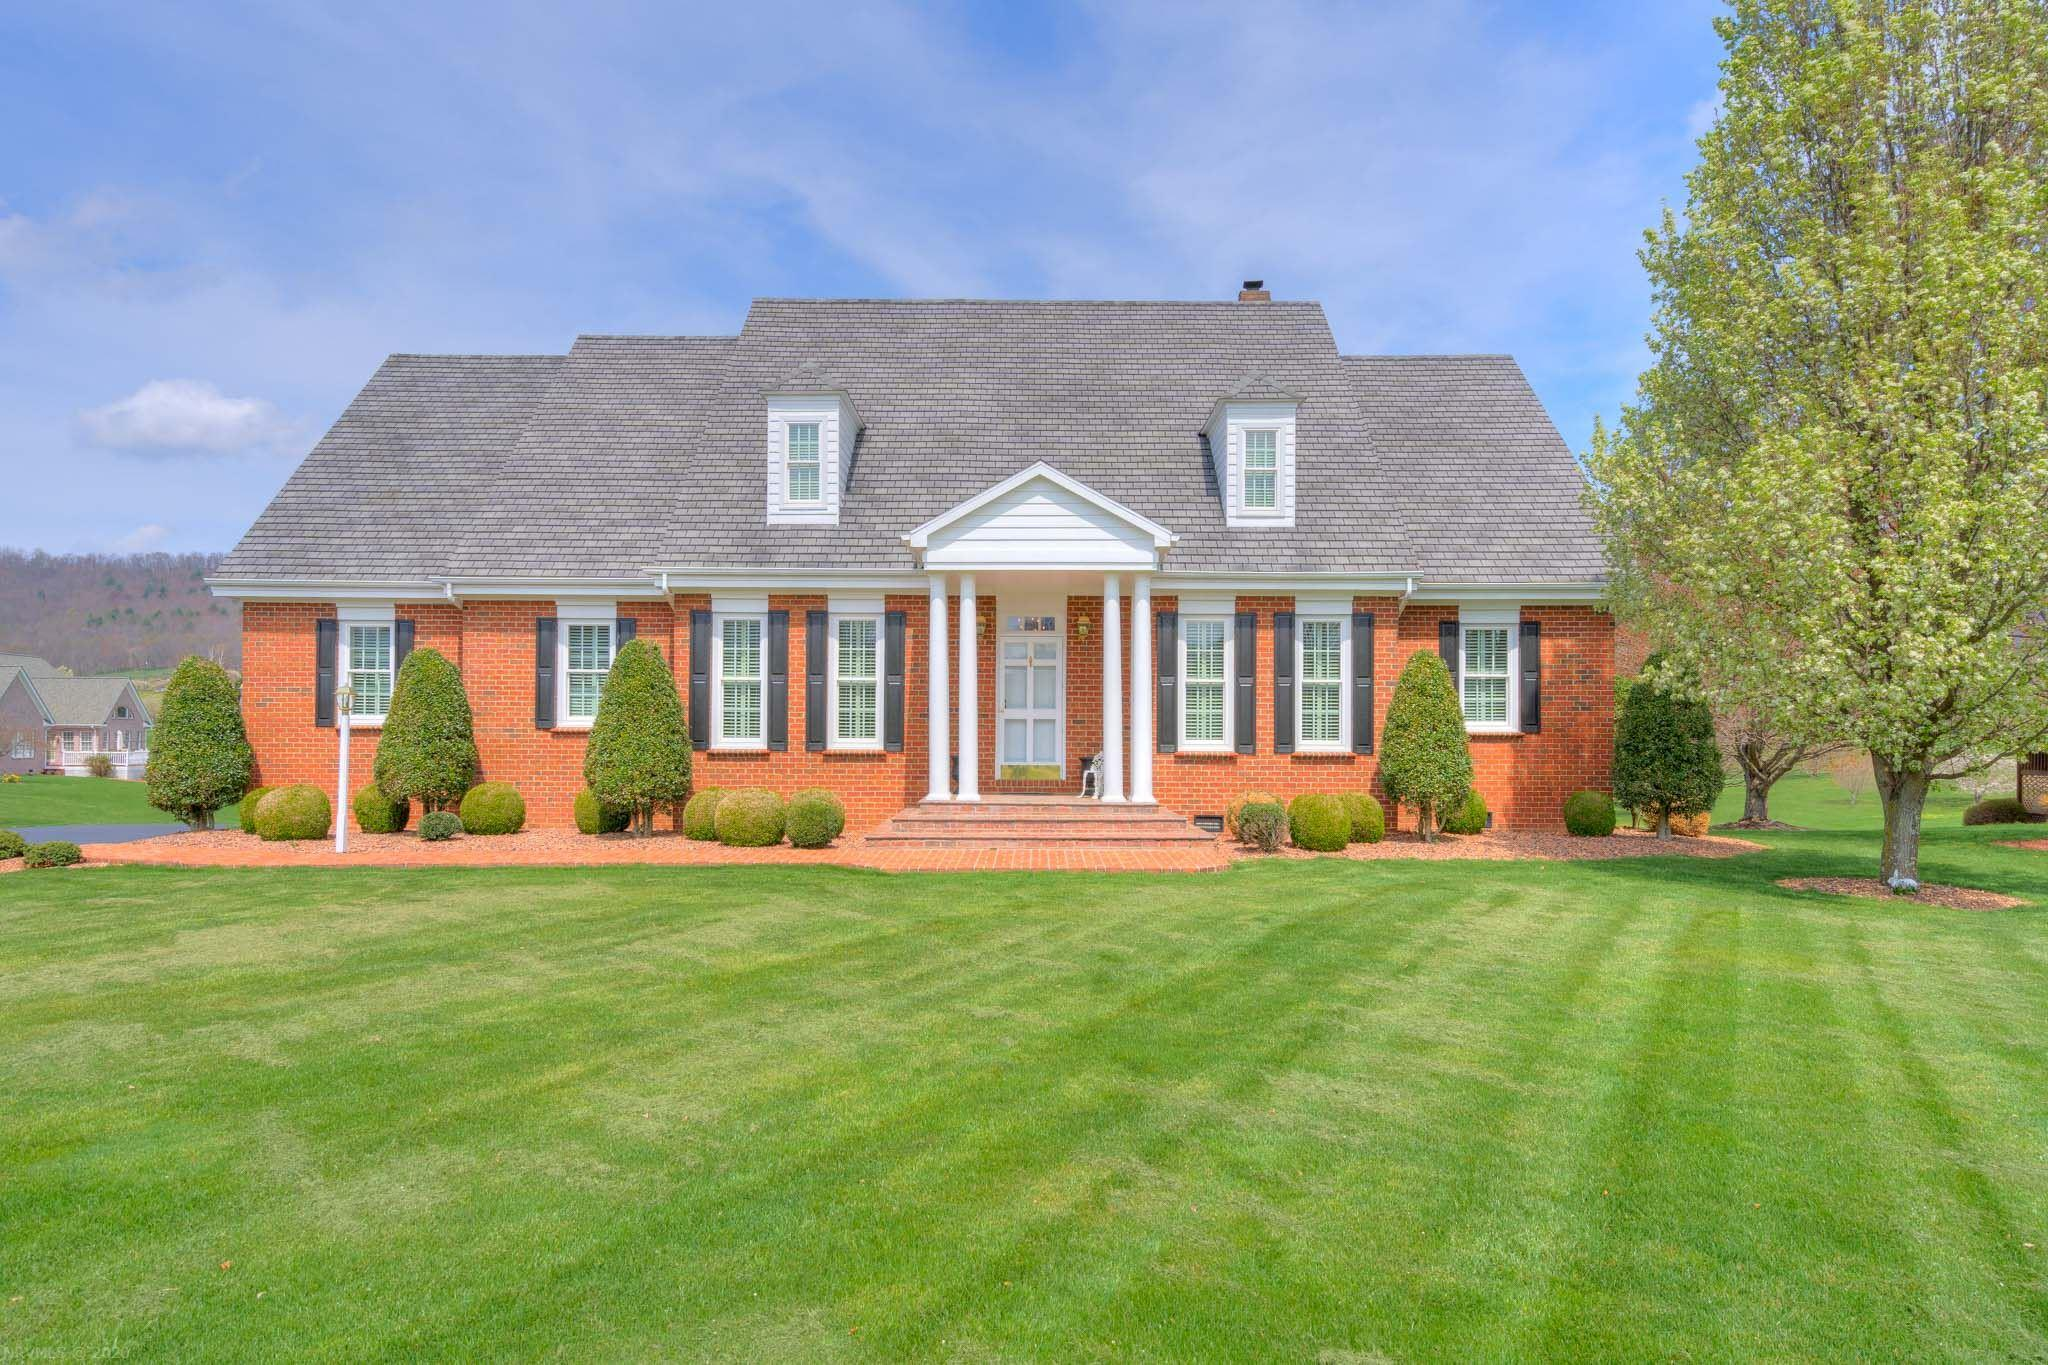 Stately all brick colonial impeccably maintained is picture perfect. A columned front porch and manicured landscaping welcomes you into a beautifully appointed home with decorative moldings, hardwood floors and big window views throughout. French doors open into the formal dining room with plantation shutters, and a crystal chandelier. The casual living room with a gas fireplace, built-in bookcases, recessed lighting offers mountain and golf course views!Gorgeous chef inspired kitchen offers an abundance of cherry cabinets, granite counters, breakfast bar, desk area, plus a dining area with views. Large laundry room with lots of cabinets, sink and folding space. Beautiful master suite has a private bath, soaking tub, separate shower, and dual sinks. Two additional spacious bedrooms with private baths complete the main level. Upper level bedroom with private bath, family room and den is ideal for guest or second living space. Come on over and enjoy the views from the cover brick patio.